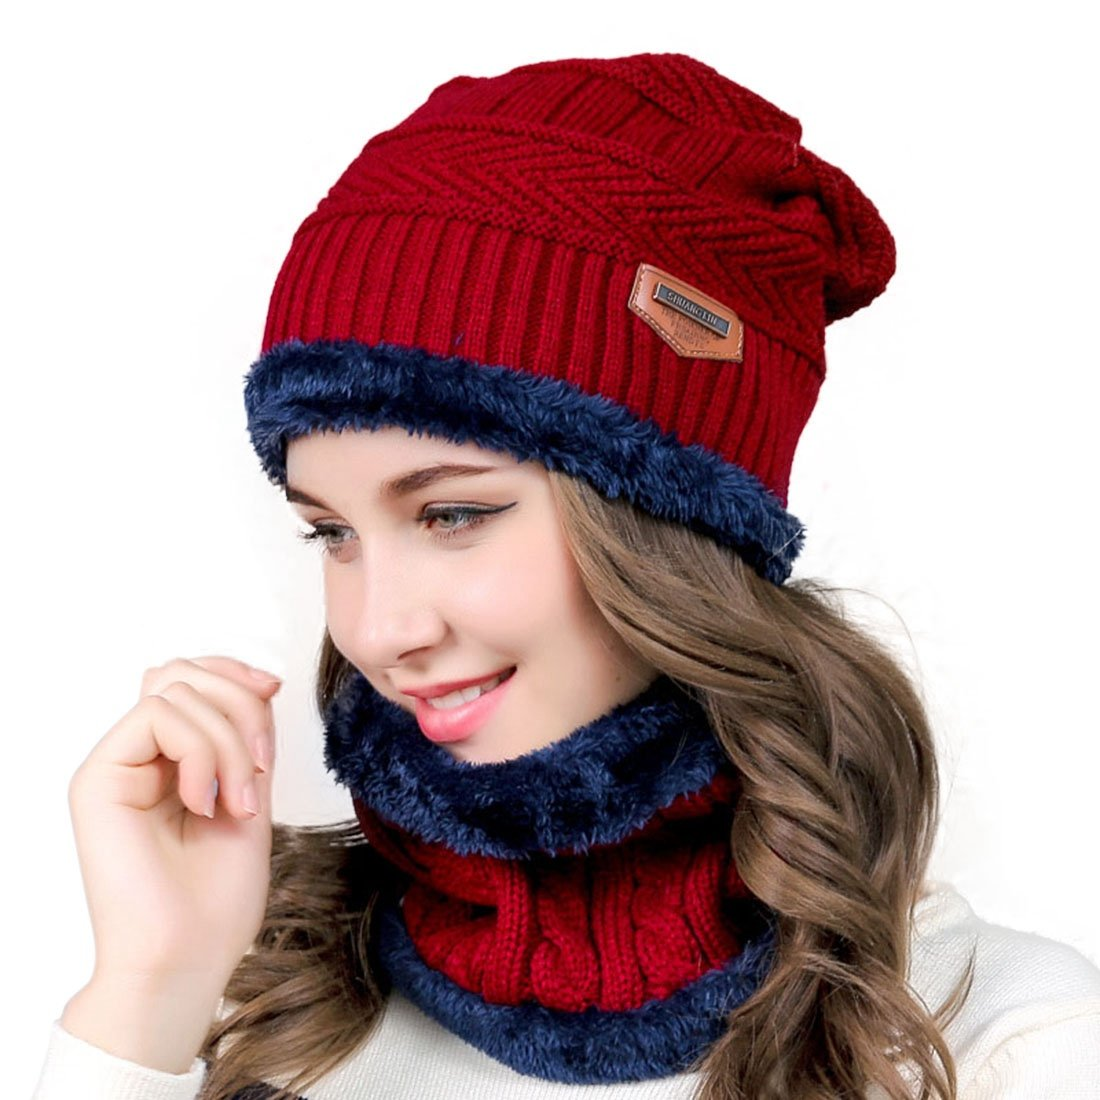 Xianheng Winter Knitted Cap Warm Beanie Hat & Scarf for Women Men Red YG0134-4/XHCA